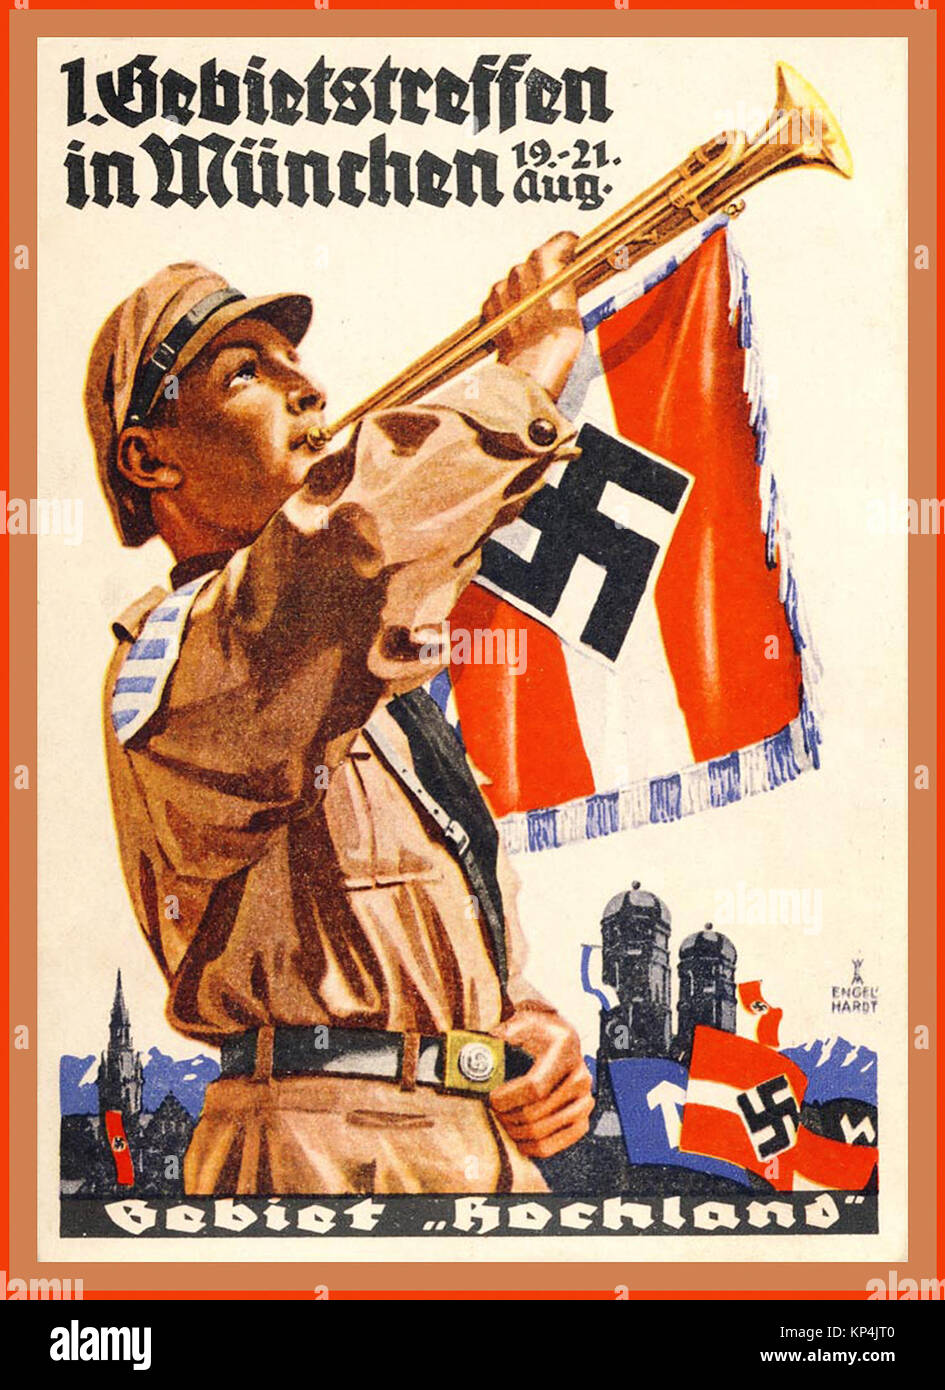 1930's Vintage Hitler Youth Poster advertising a parade meeting at Munich 19-21st August - Stock Image